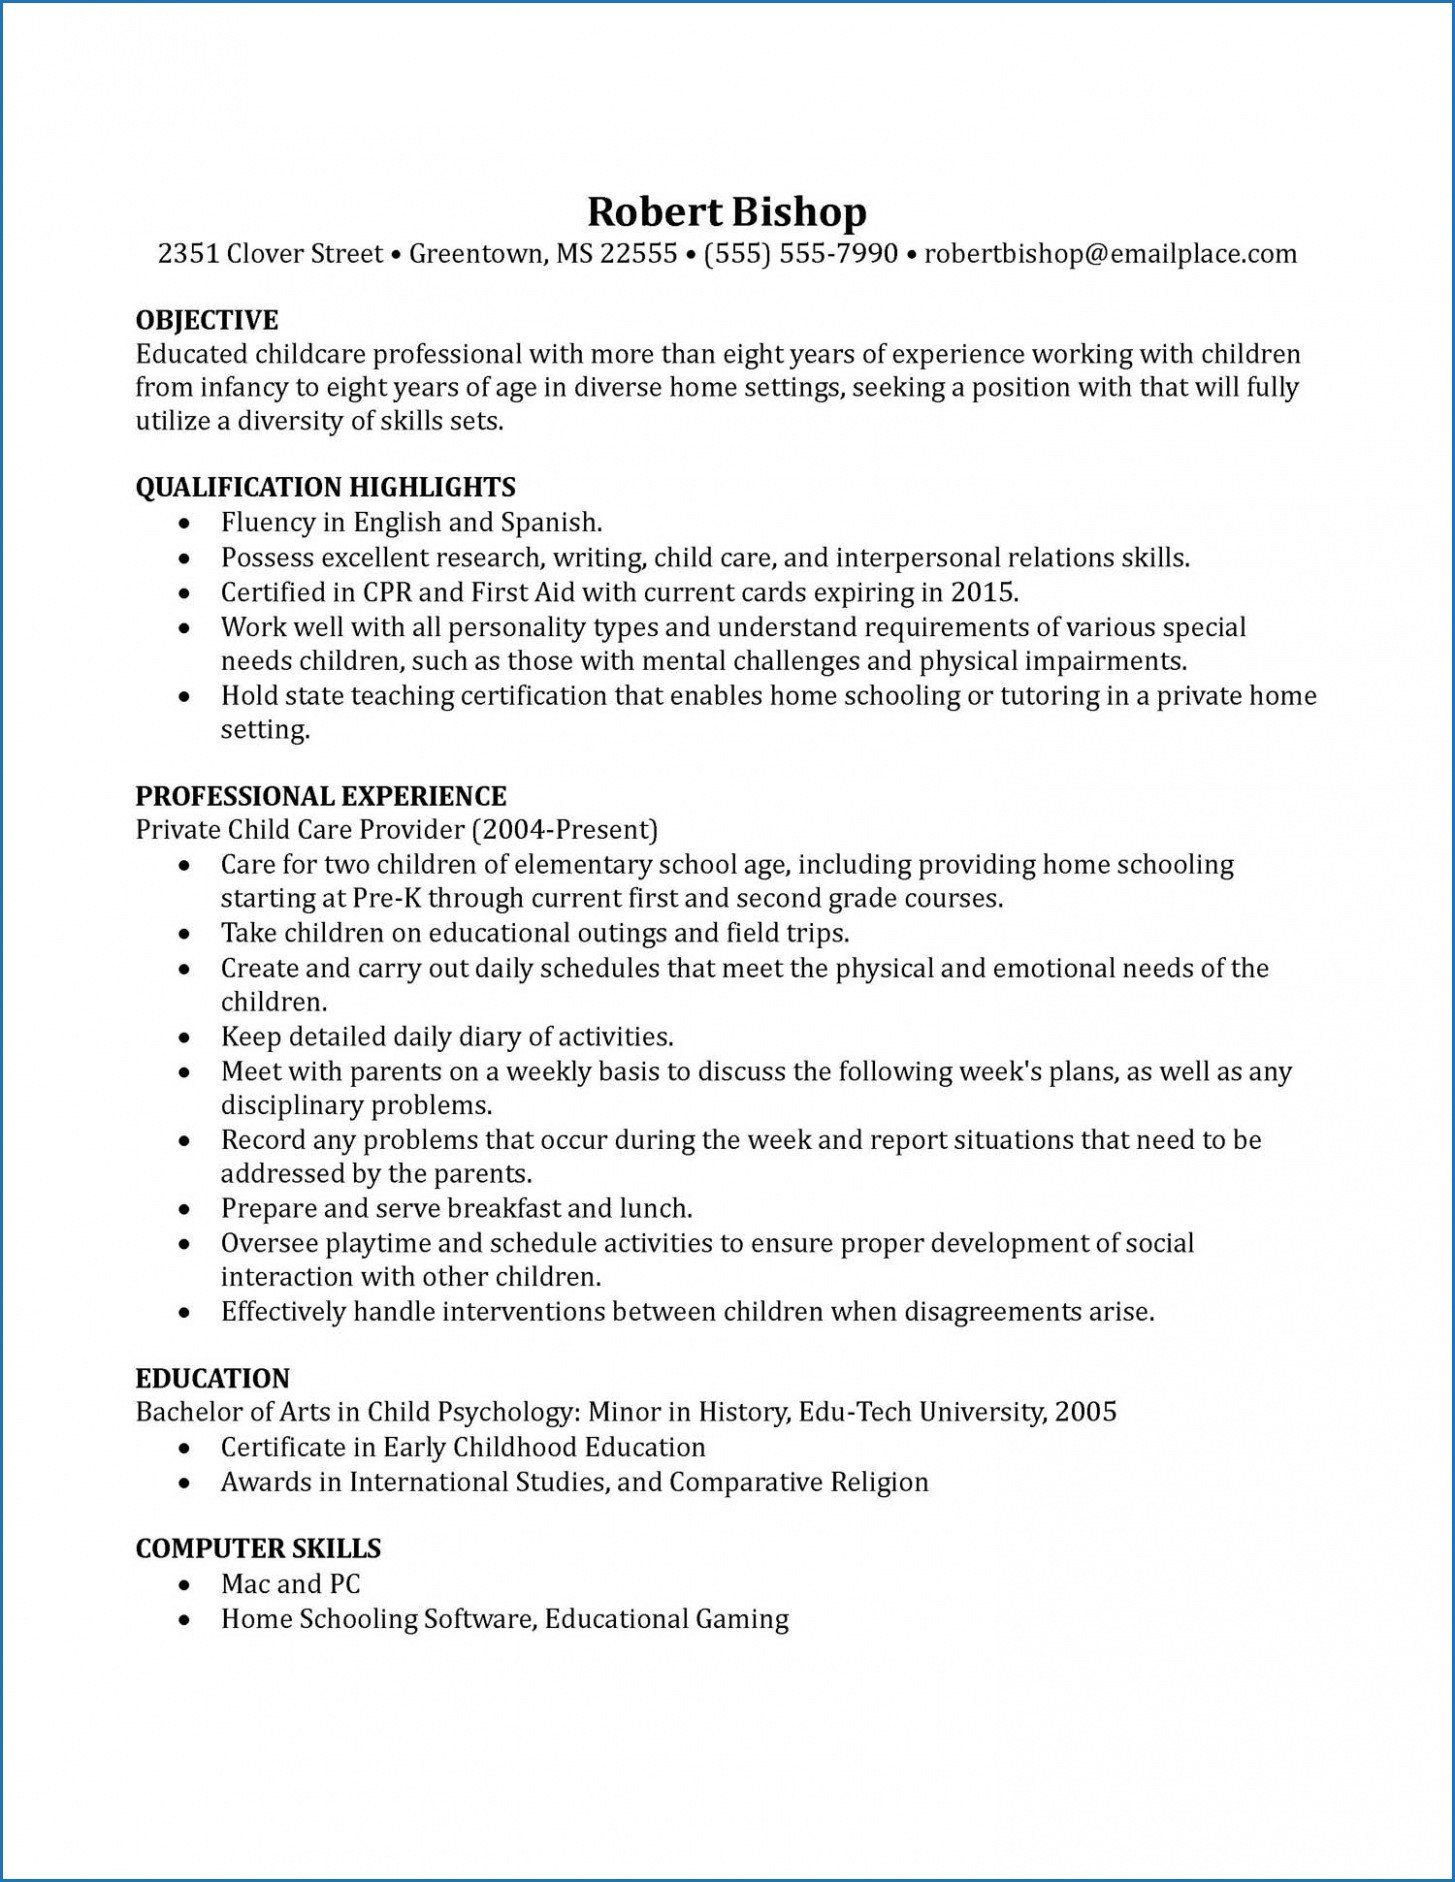 Honors And Awards Resume Examples Elegant Great Resume Examples 2016 Best Unique Skills To Put Resume Teacher Resume Examples Babysitter Resume Resume Examples